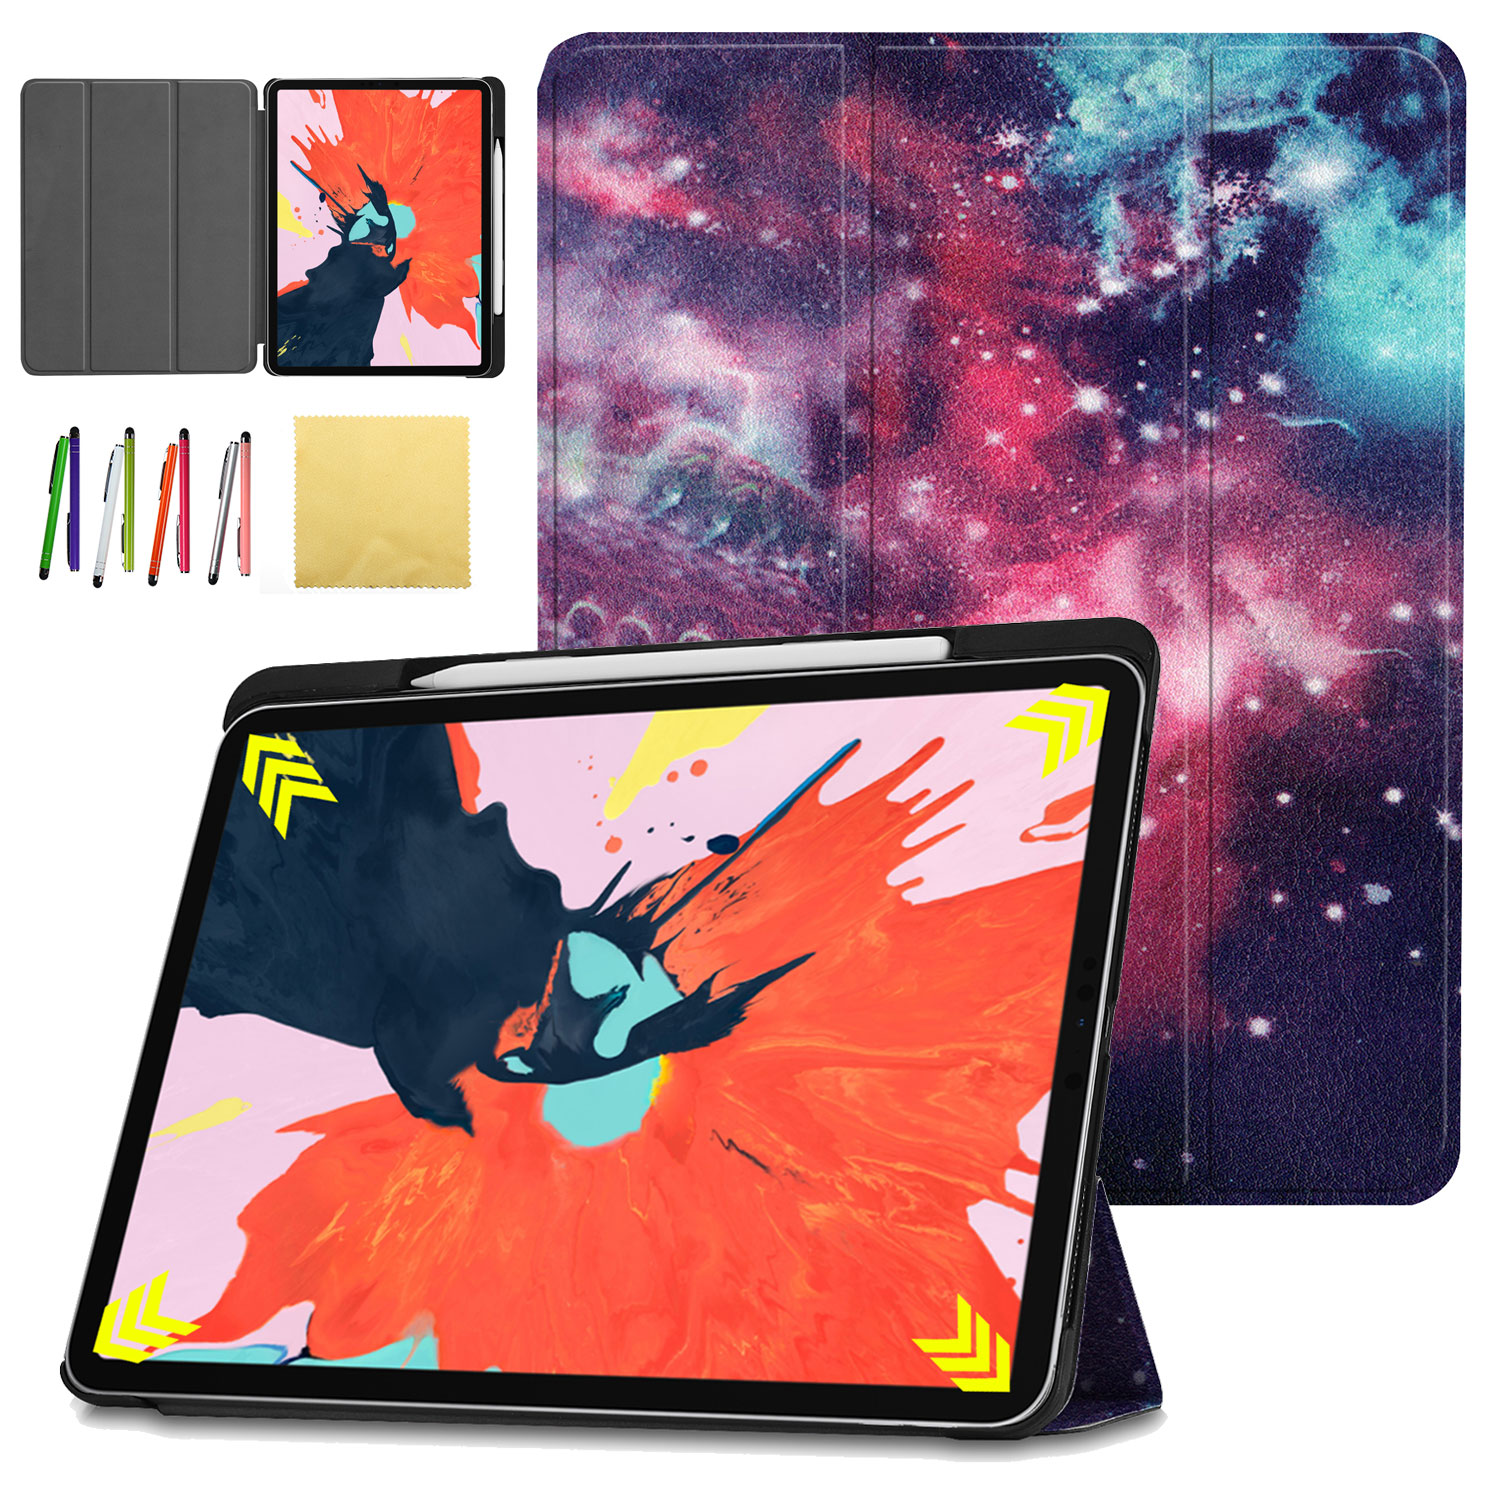 iPad Pro 12.9 Inch 2018 Case, Allytech Slim Lightweight Shell [Support Magnetically Attach Charge/Pair] Stand Cover with Auto Wake/Sleep for New iPad Pro 12.9 Inch 2018 (3rd Gen), Galaxy